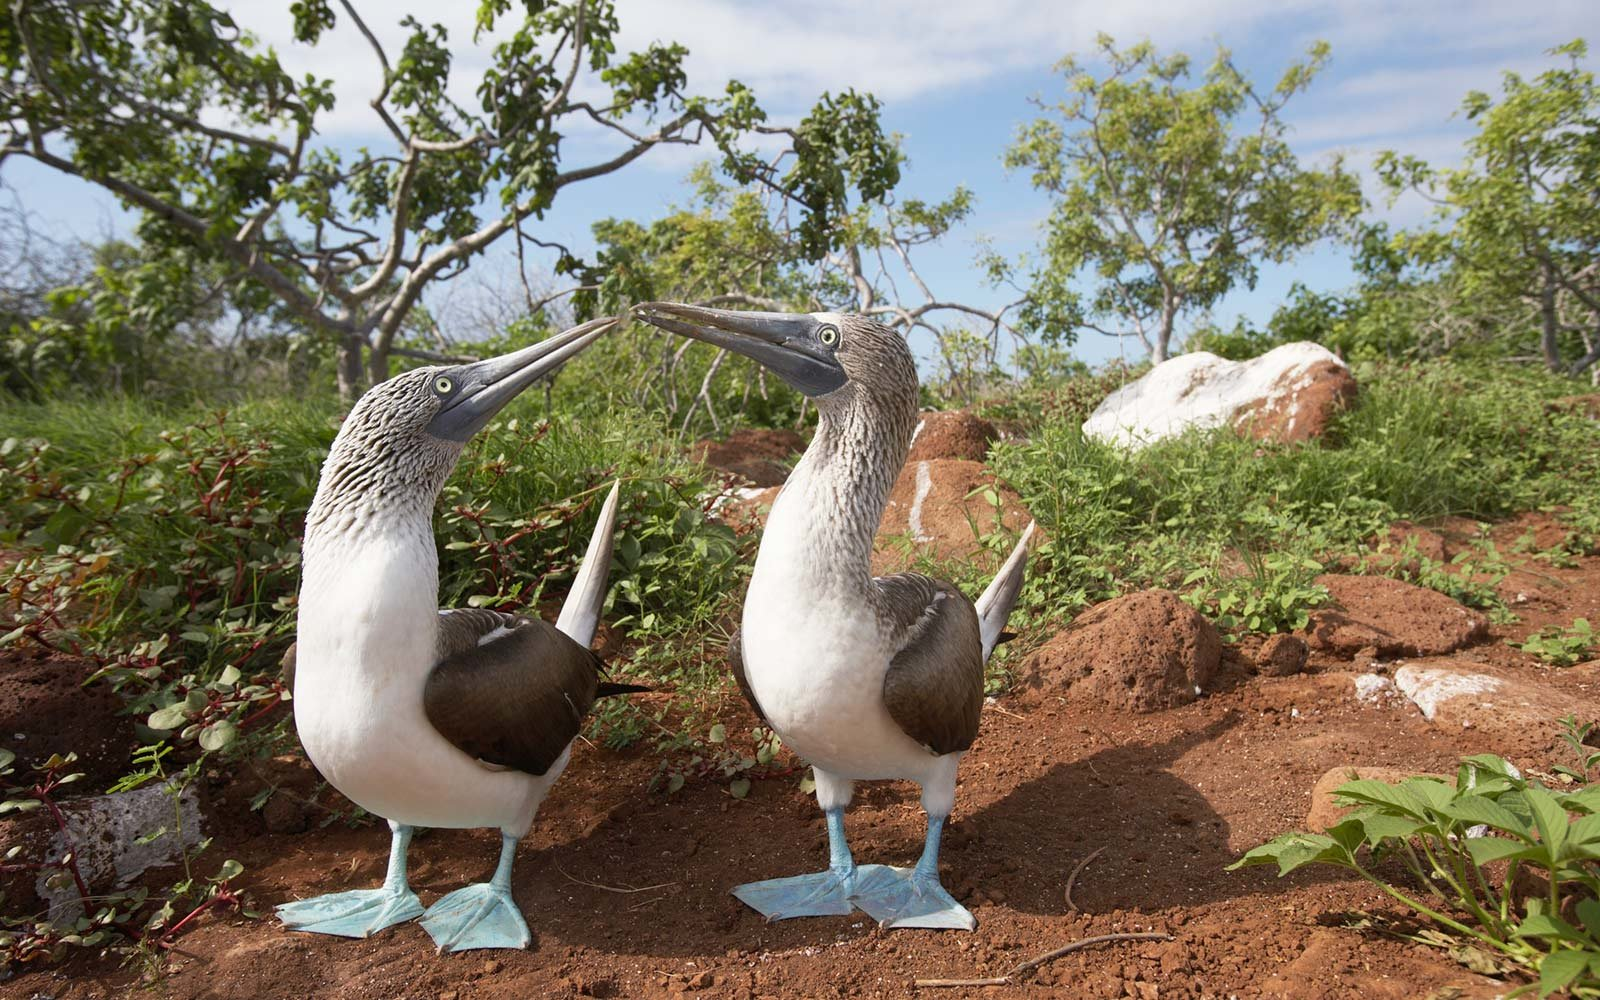 Blue Footed Boobies, Galapagos Islands, Ecuador